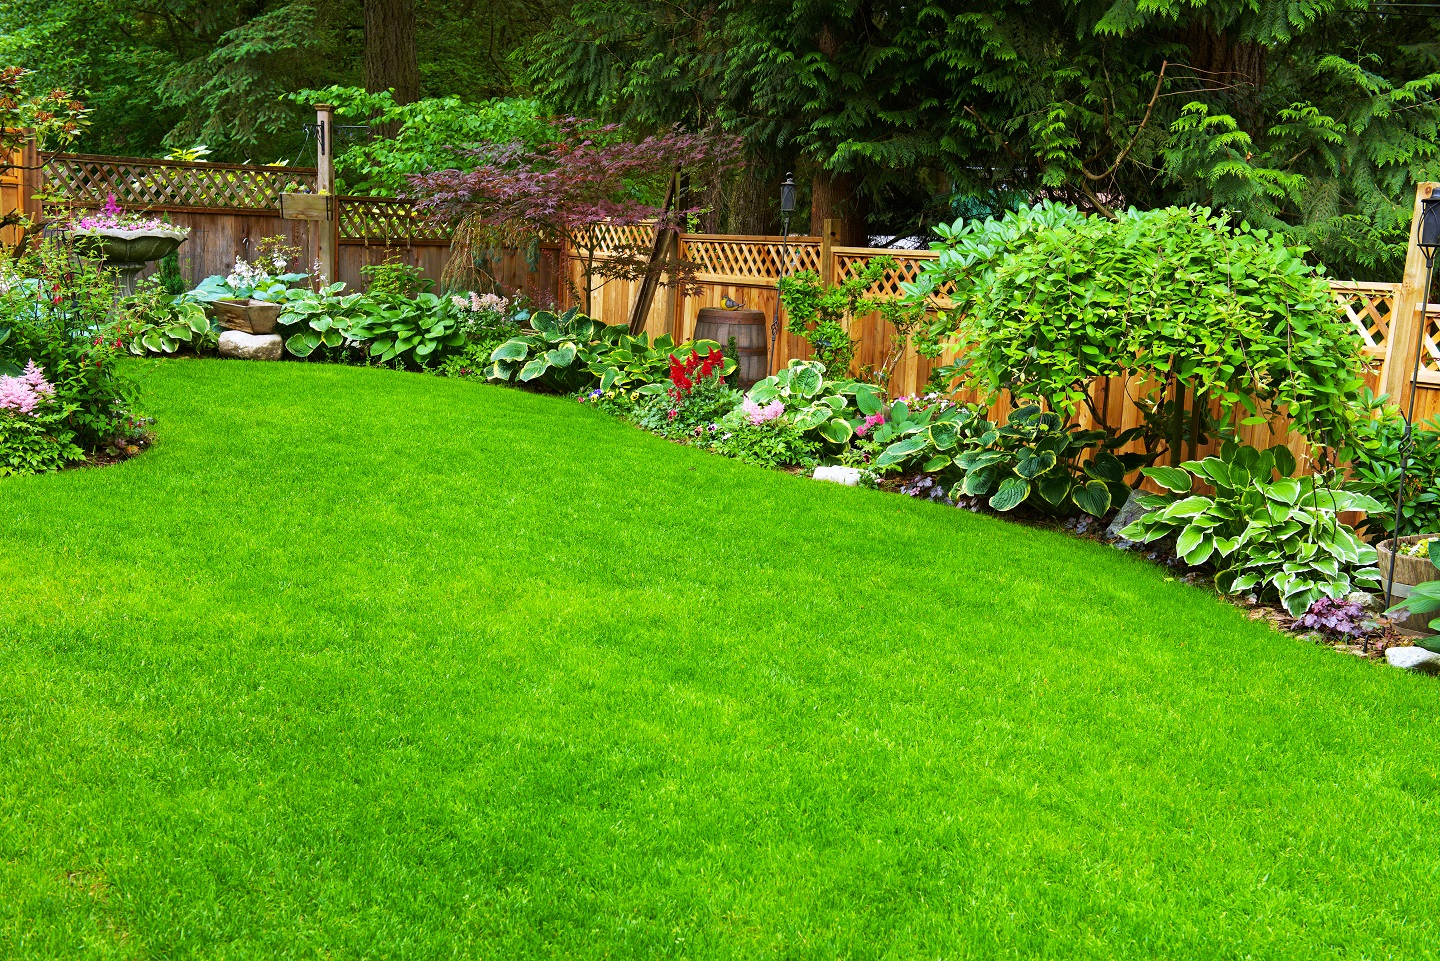 Stunning lawn care in Peotone, IL